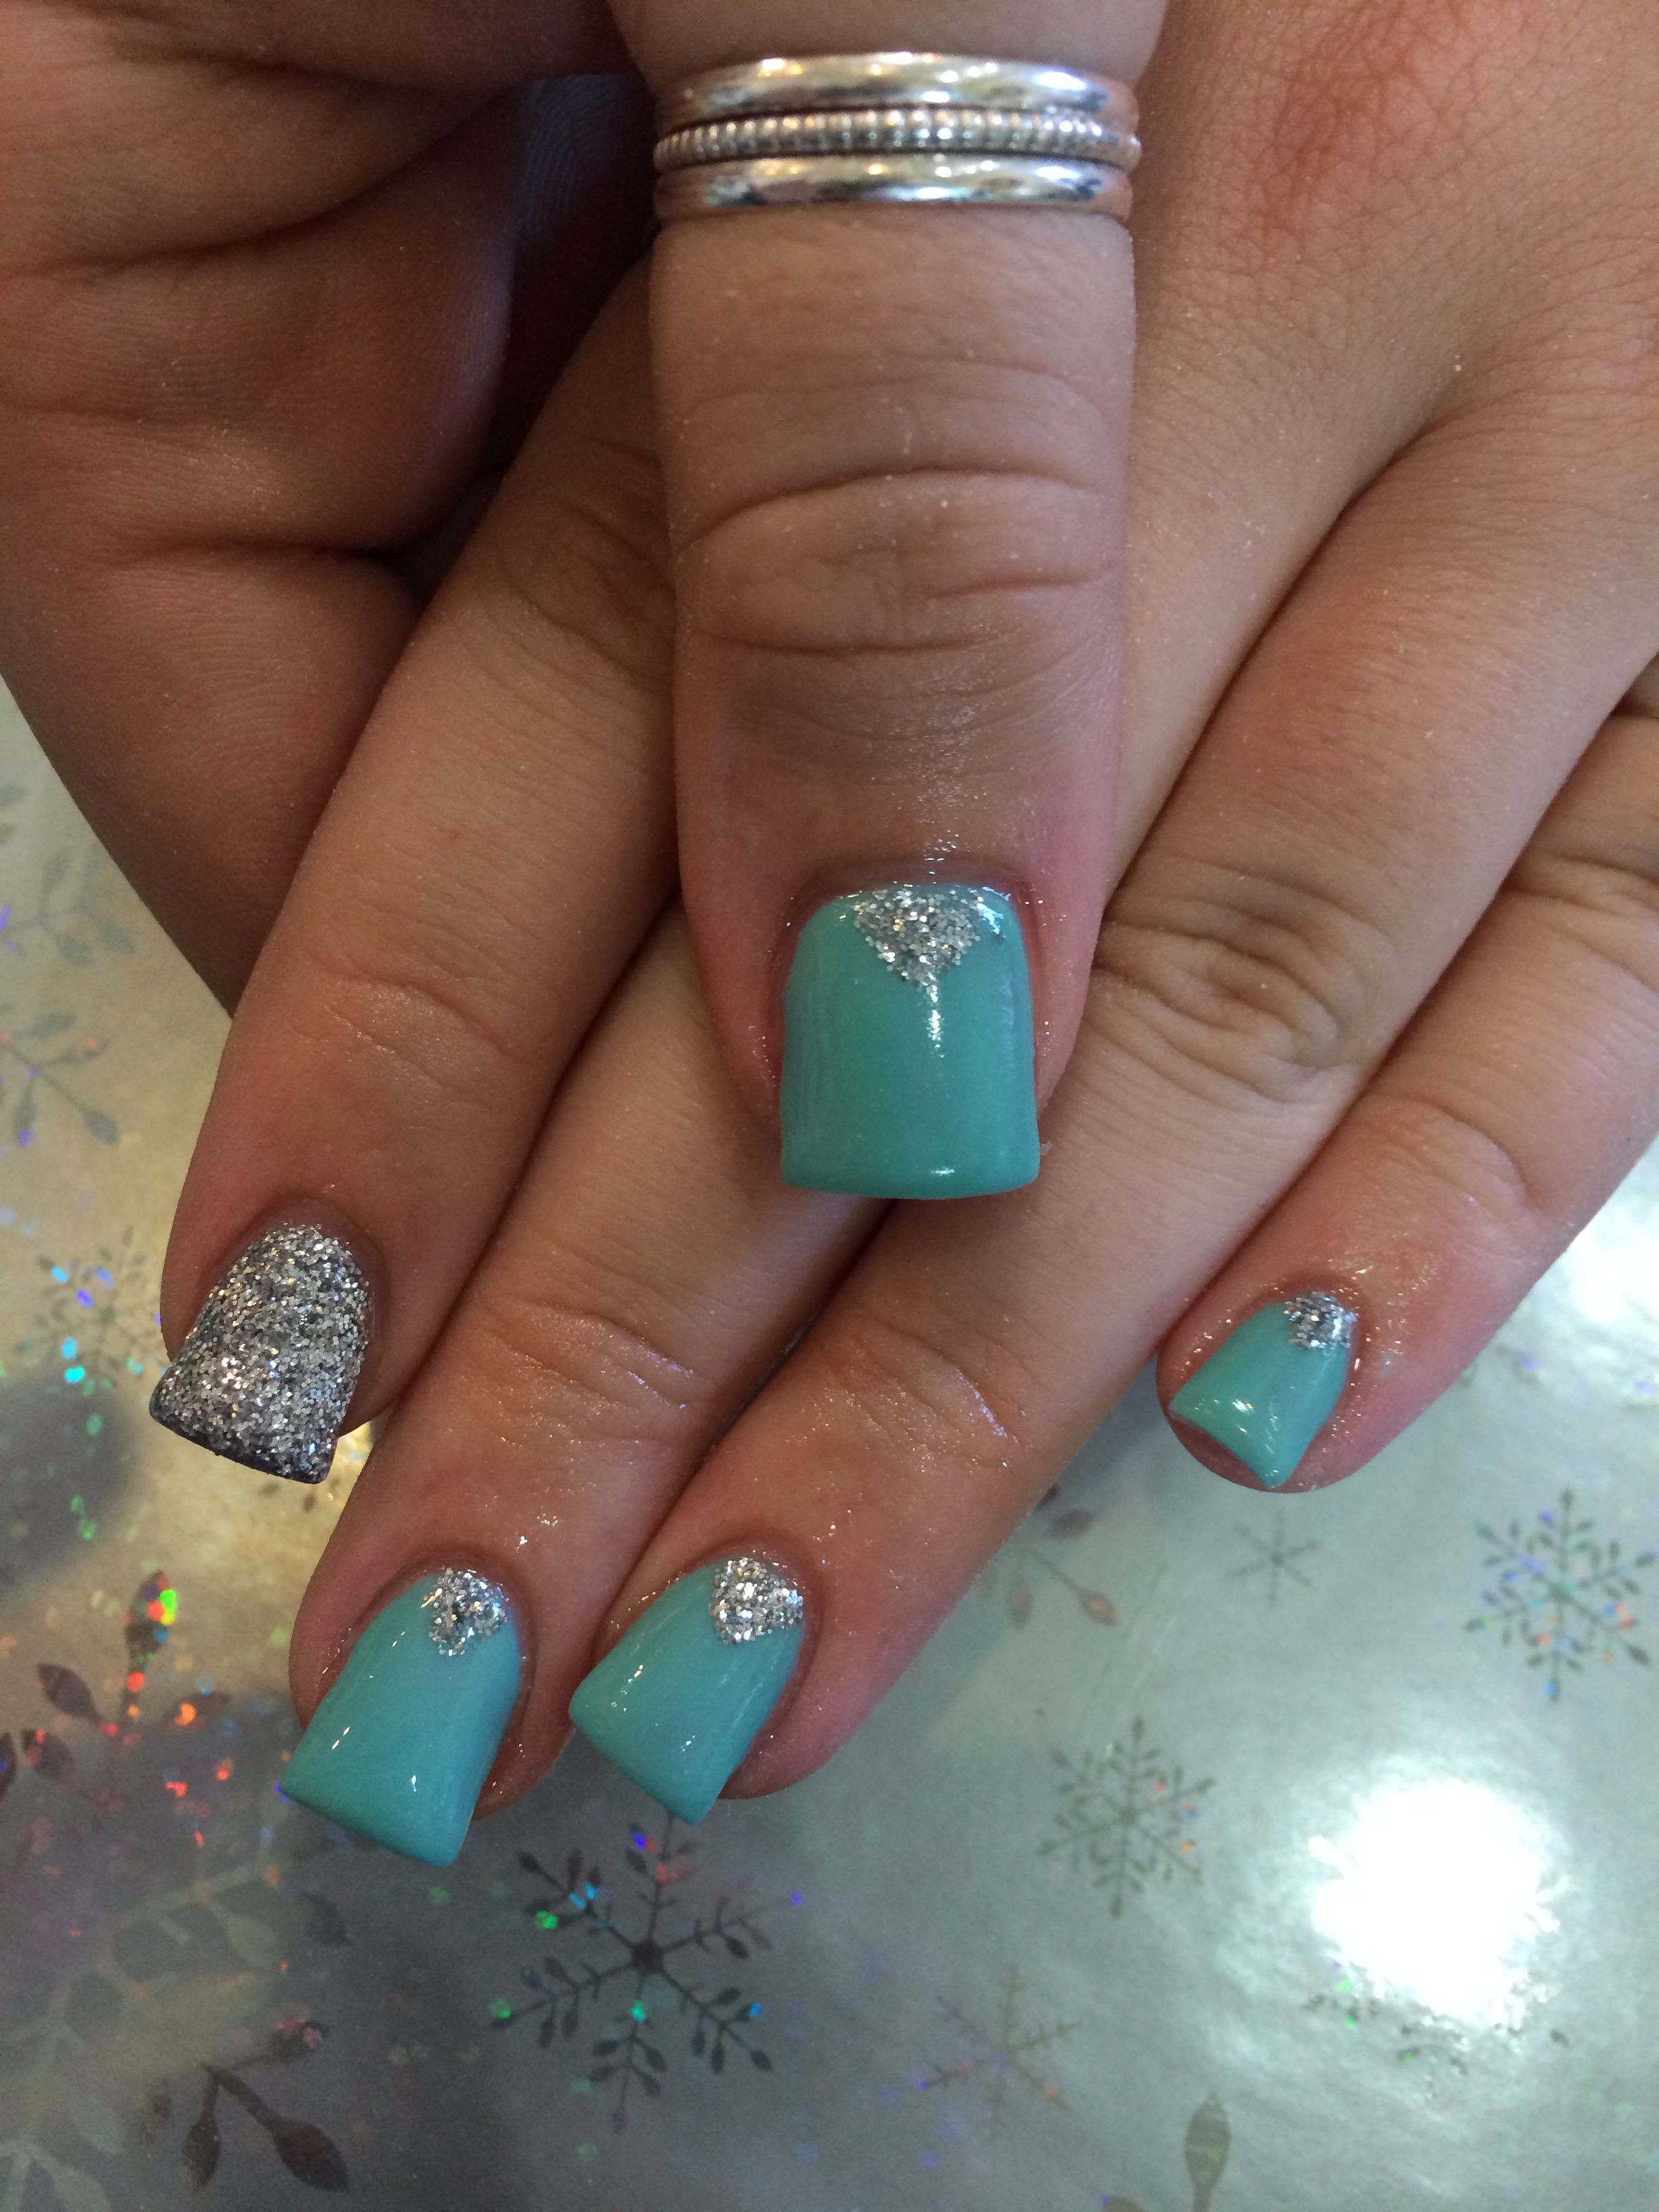 Pin By Stacey Bambrough On Nail Designs And Nail Art Stamp Designs Mint Green Nails Green Nails Nails Inspiration